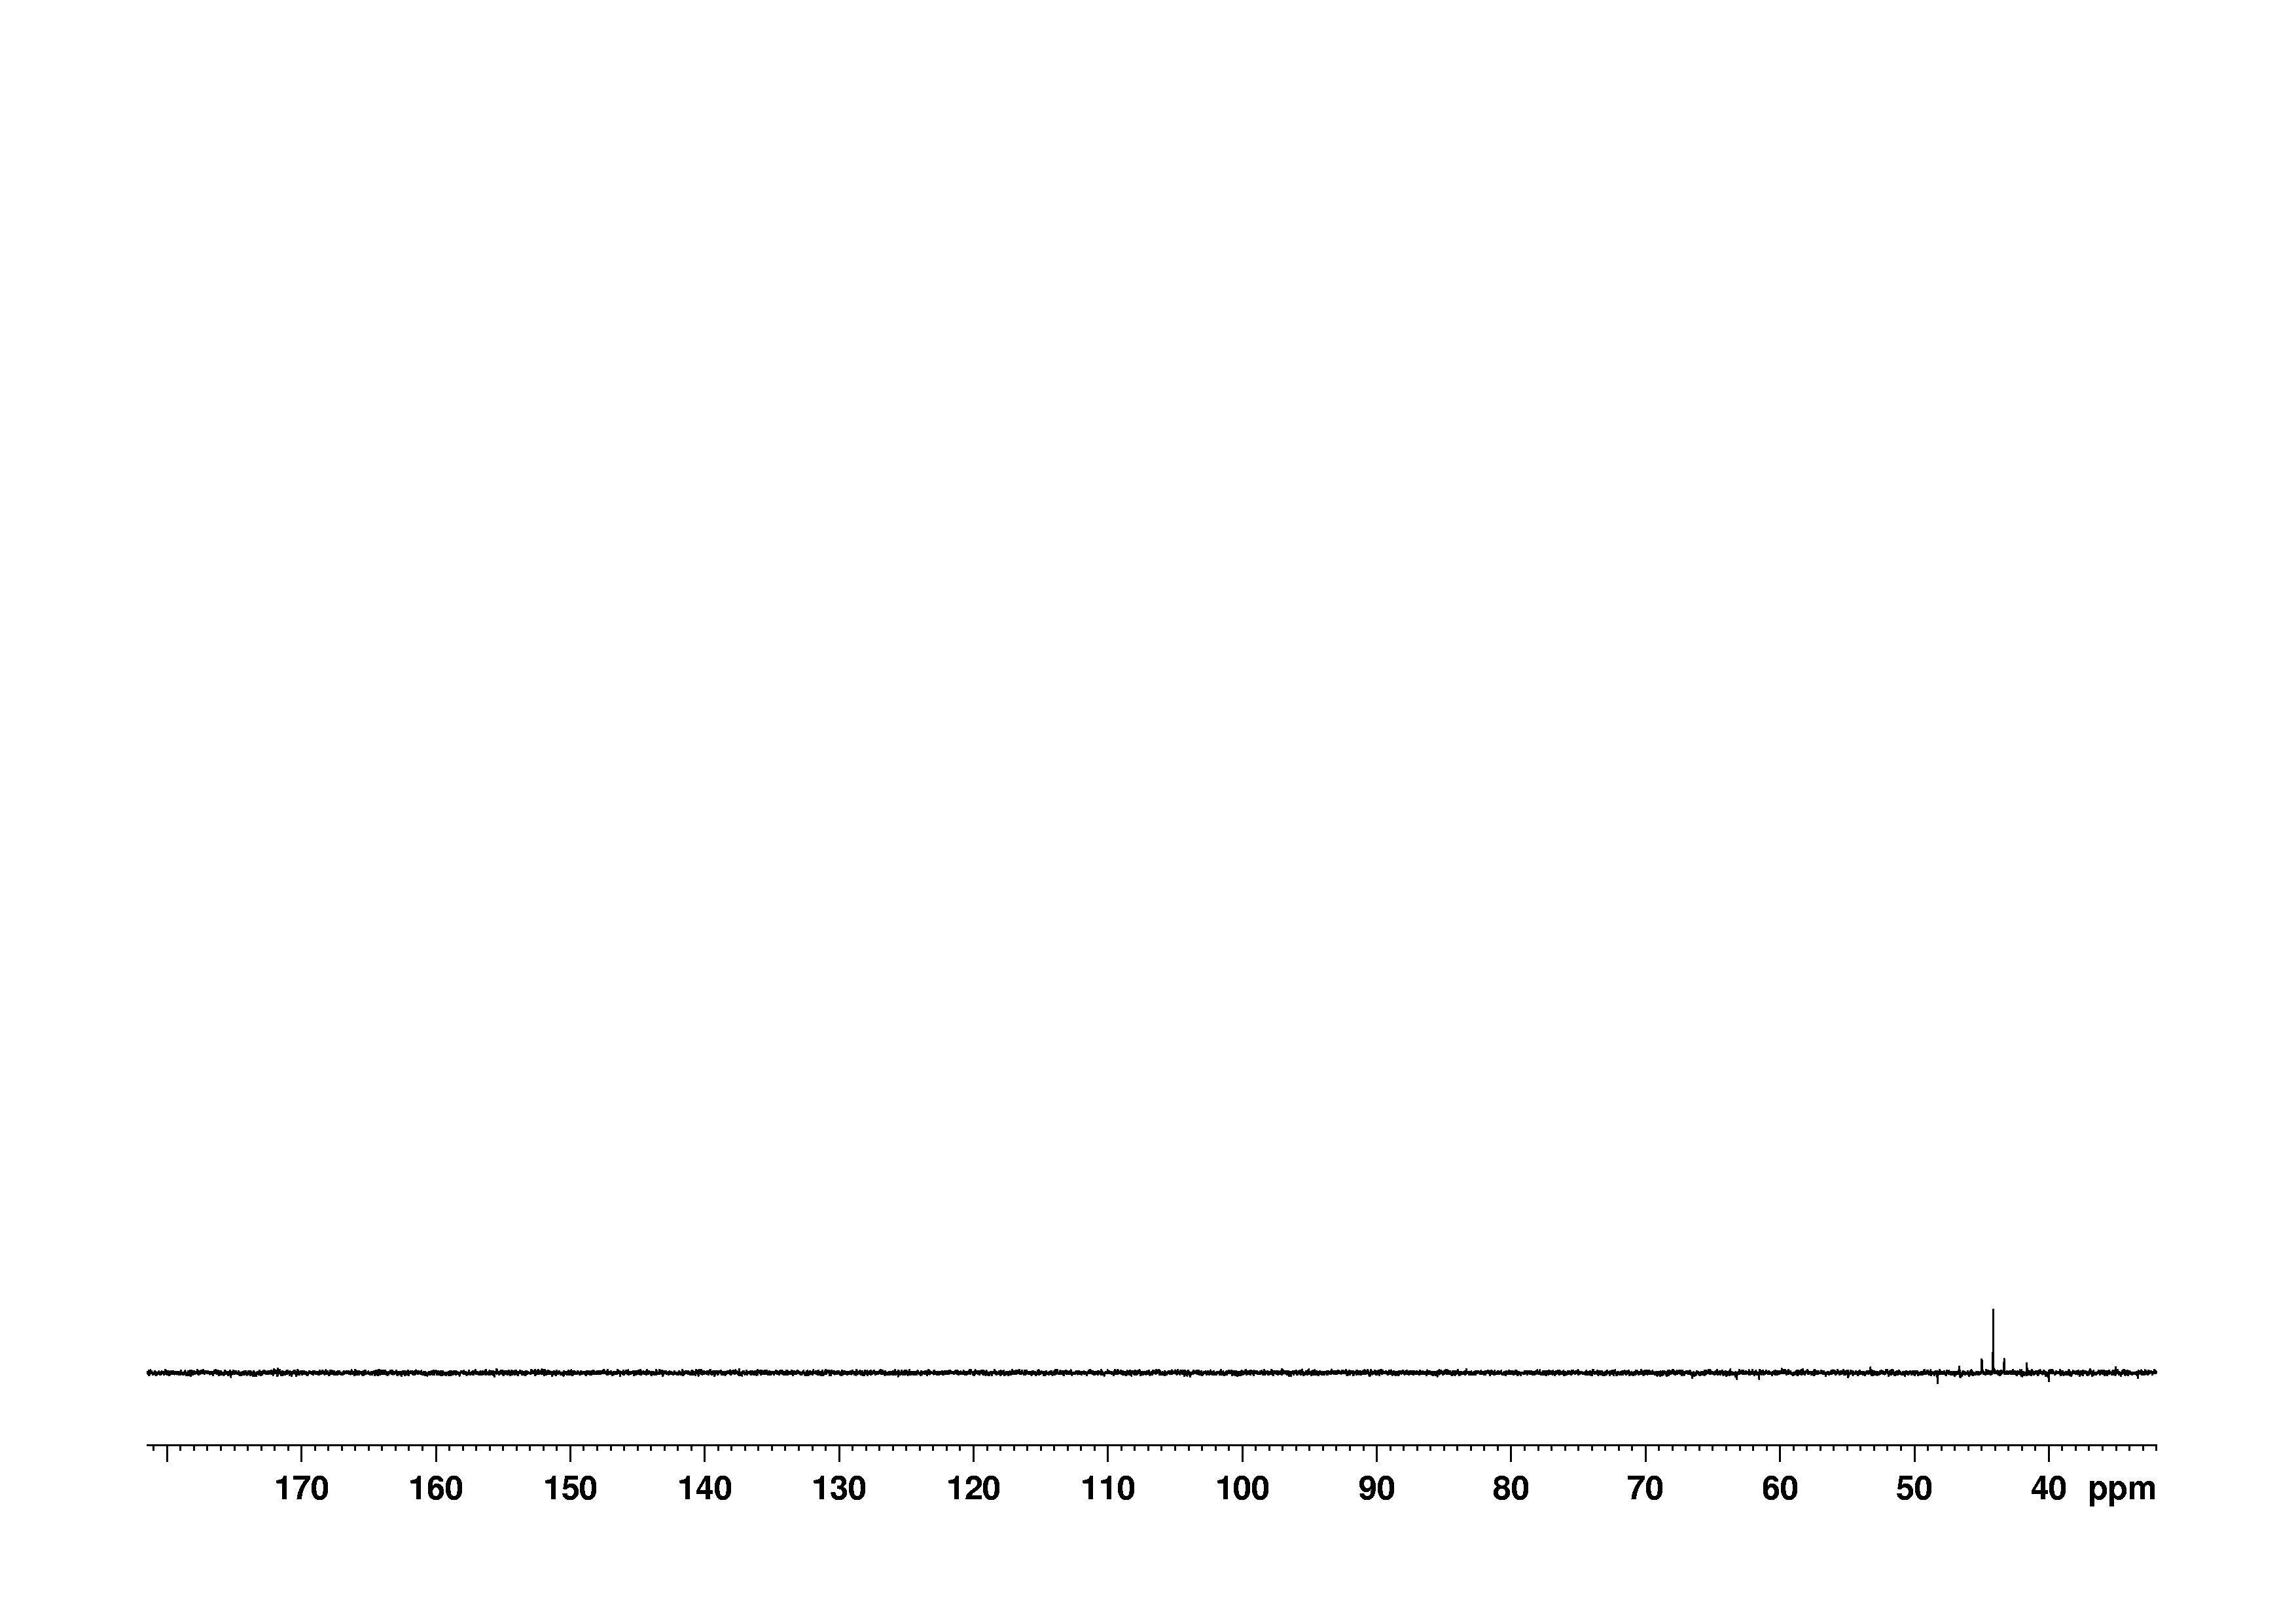 1D DEPT90, 7.4 spectrum for Glycine